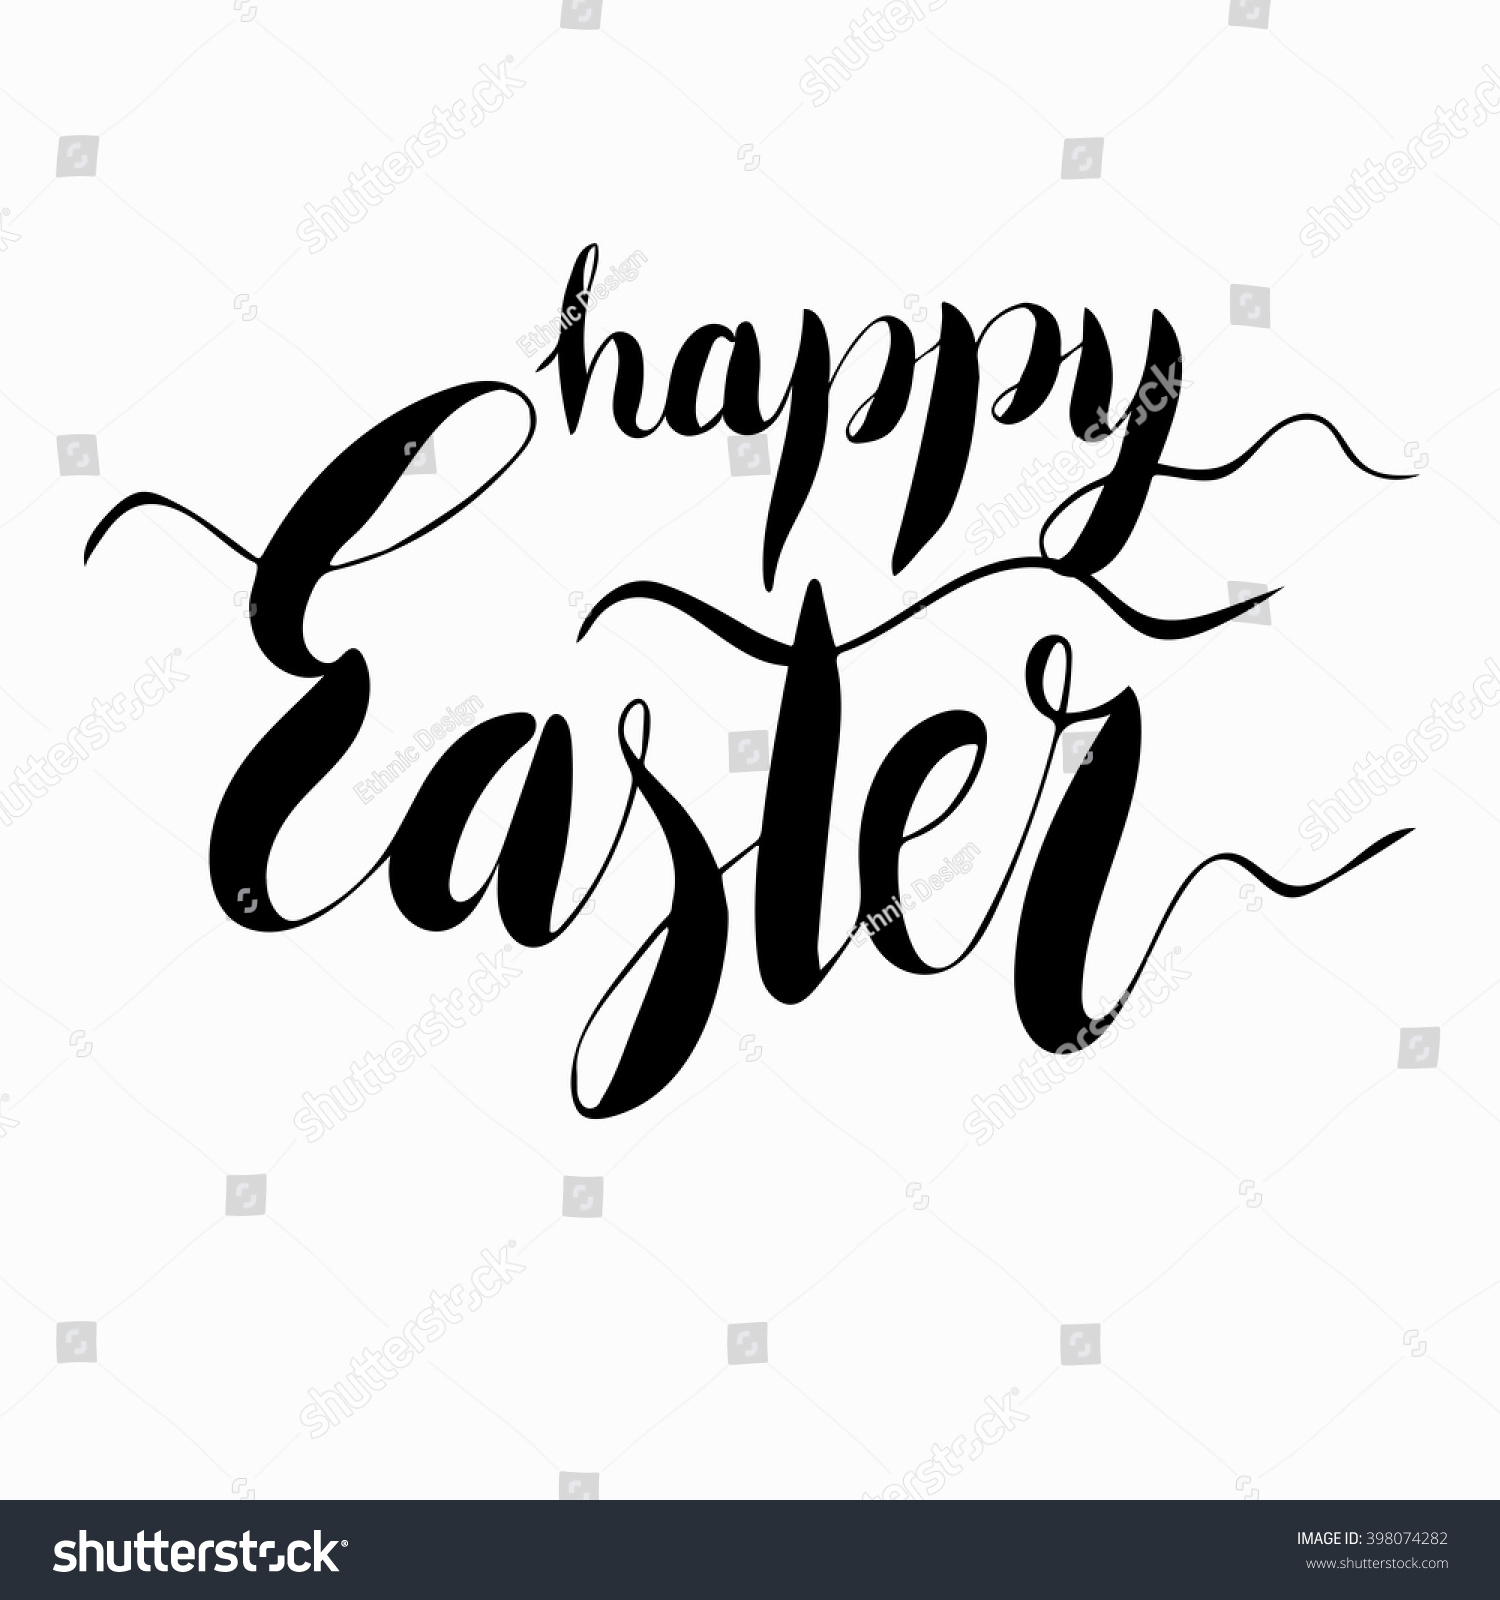 Easter hand written calligraphic text stock vector